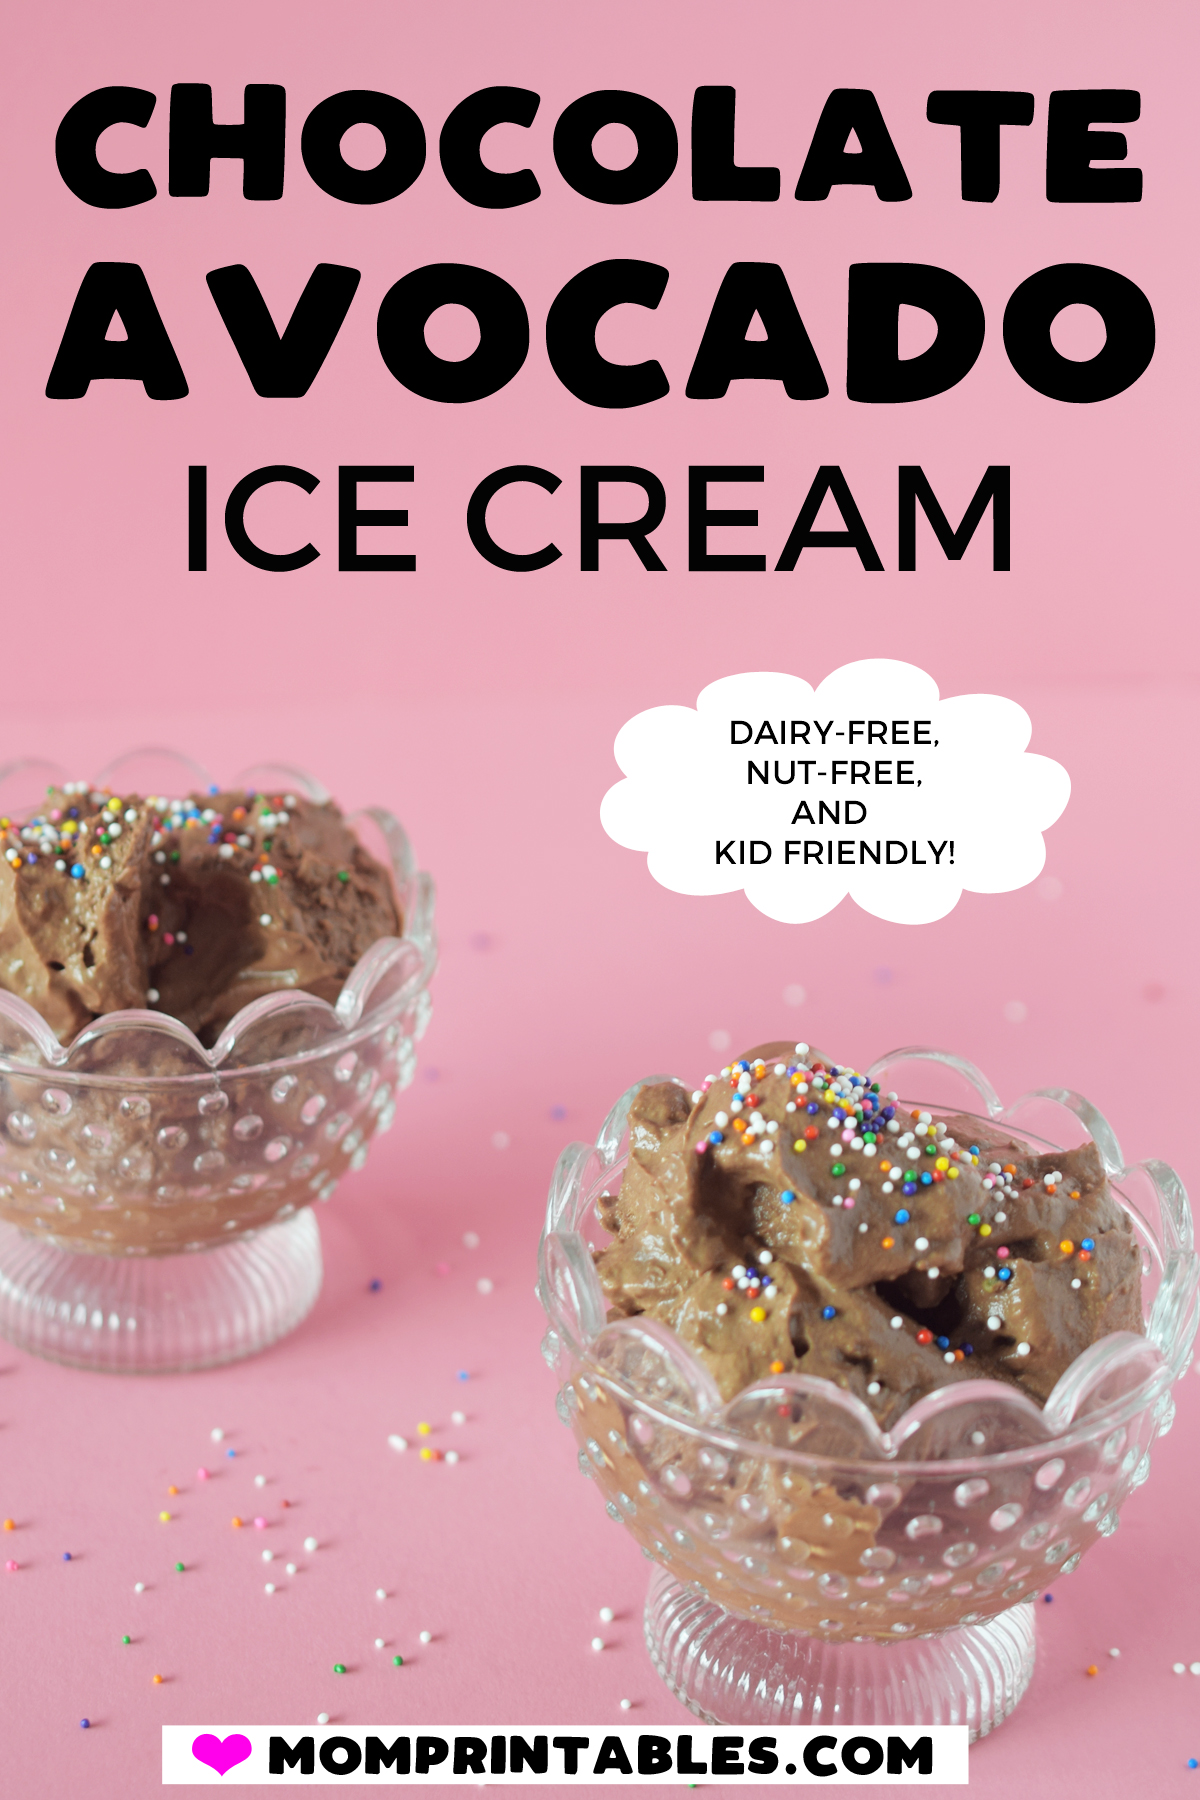 This chocolate avocado ice cream is dairy free, nut free and has no refined sugar. It's delicious and you can't taste the avocados at all. Keto | vegan | coconut milk | no churn | recipe | dairy free | maple syrup | desserts | raw vegan #dairyfree #nutfree #nochurn #avocadoicecream #kidfriendly #toddlerfriendly